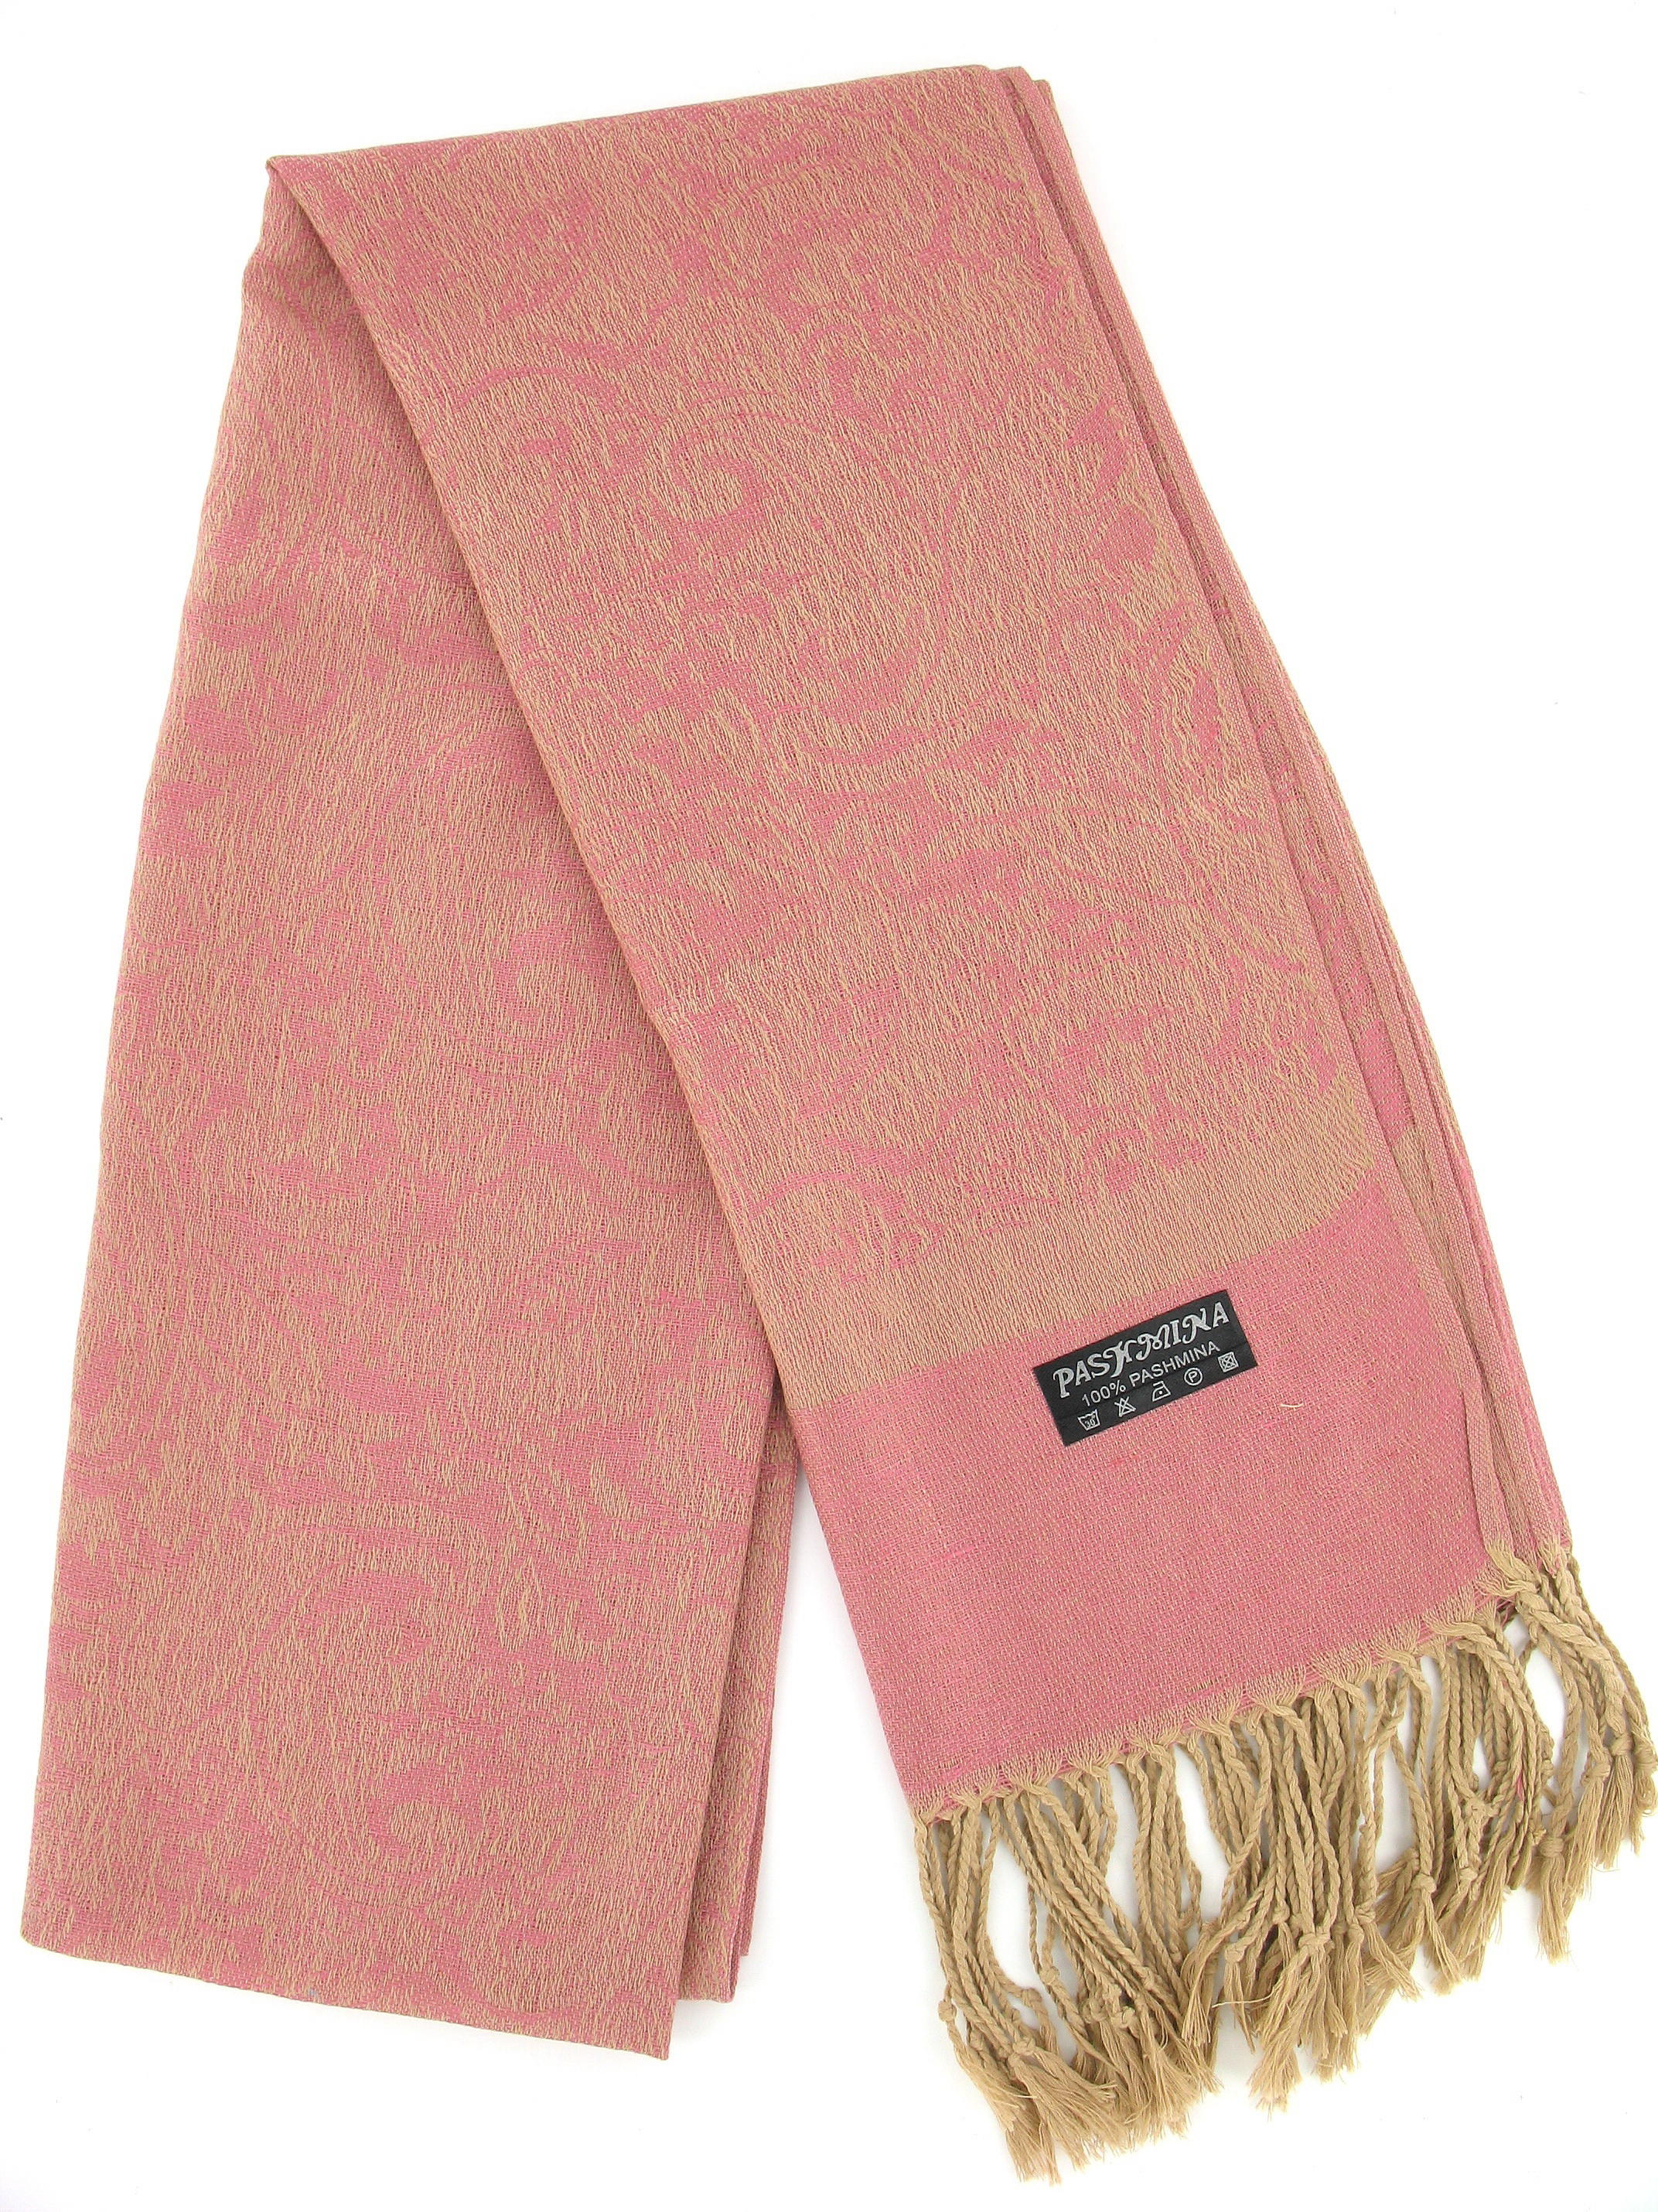 Scarf in Dusty Pink